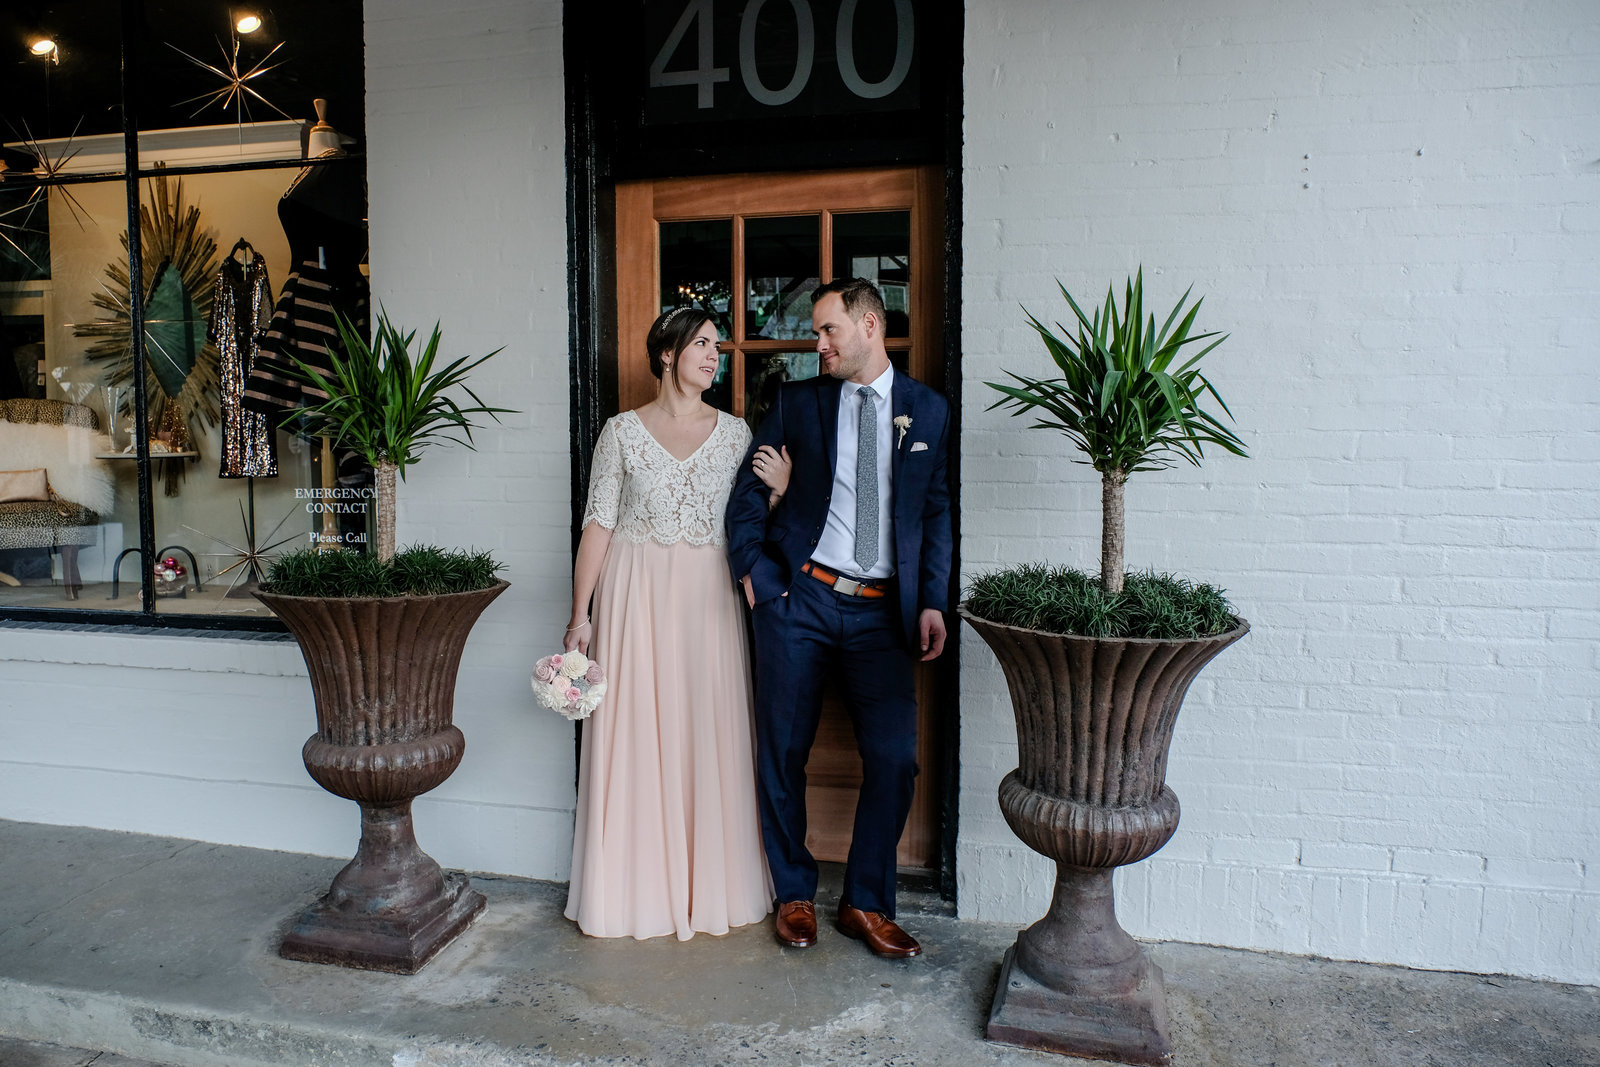 Savannah elopement, Brittany + Mark, Bobbi Brinkman Photography